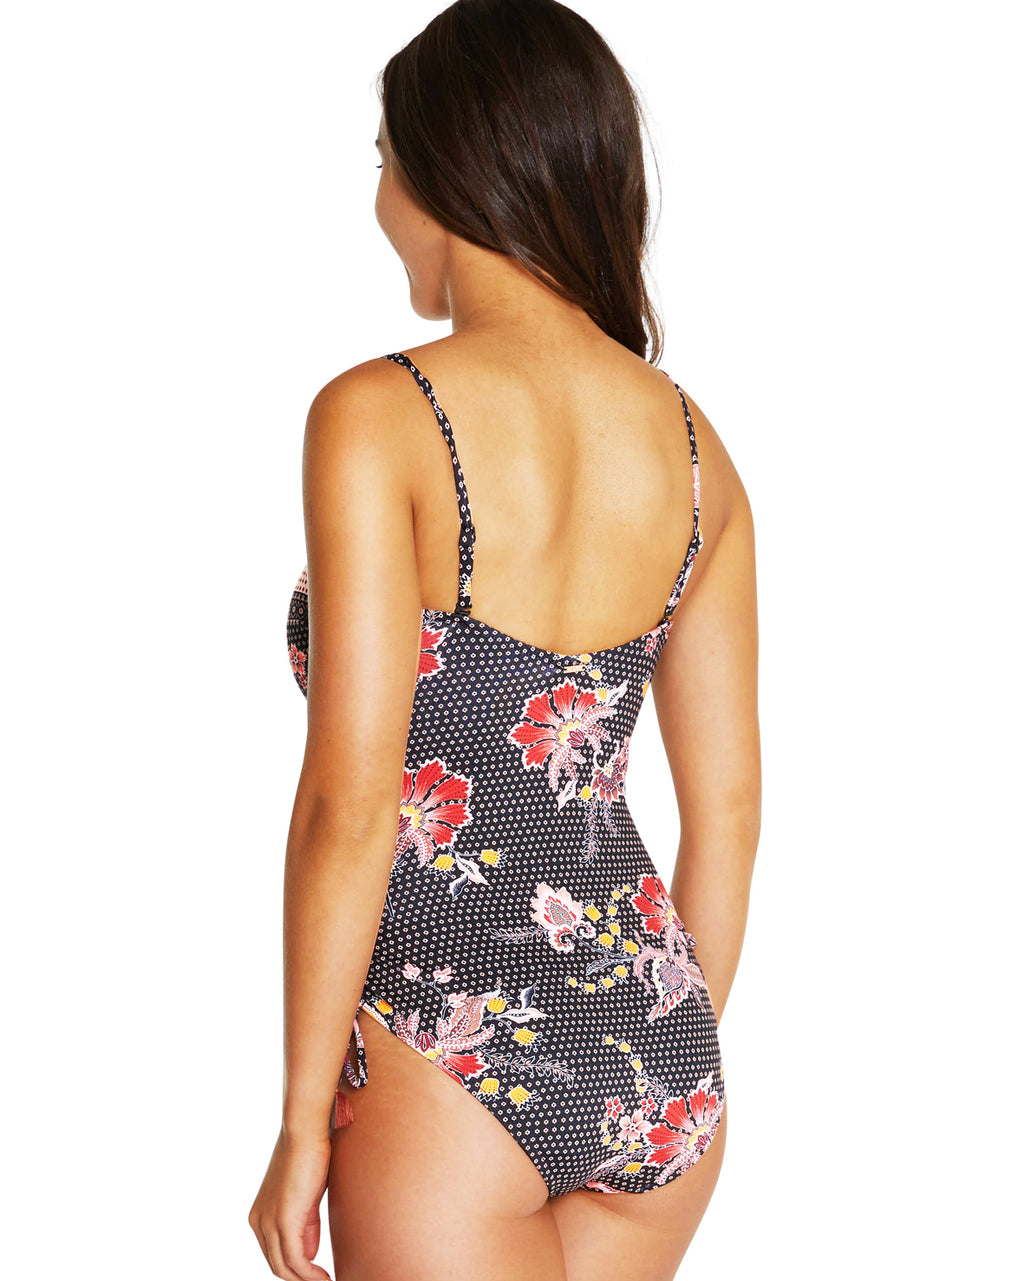 GILI ISLAND BANDEAU ONE PIECE SWIMSUIT